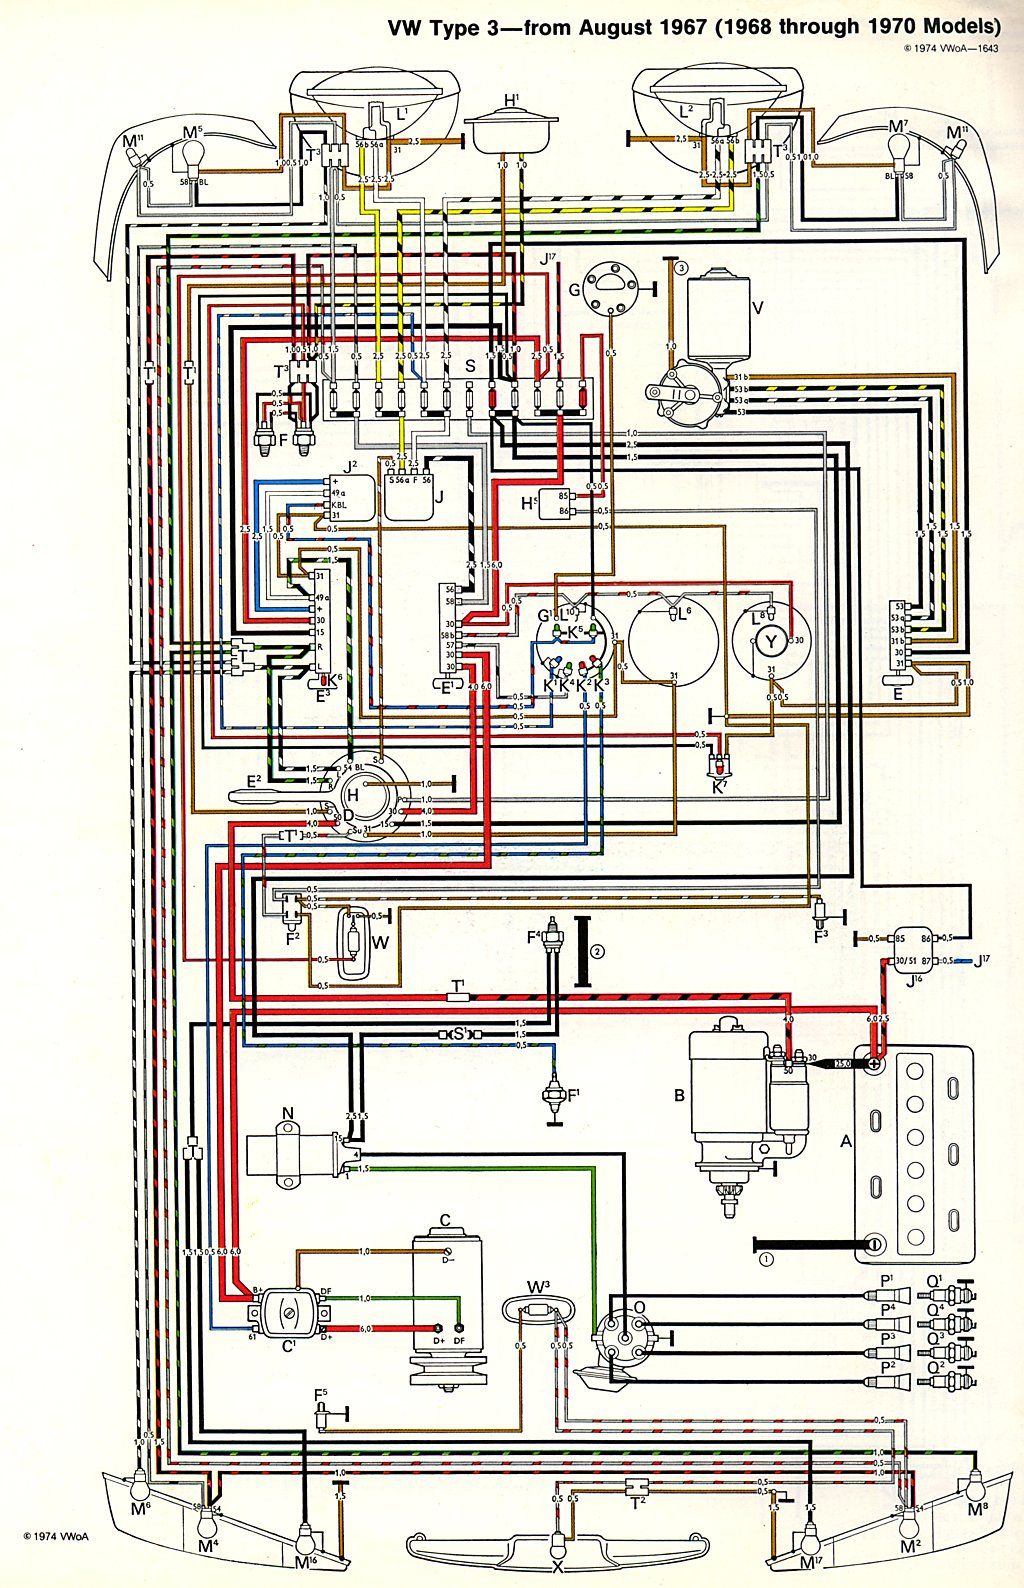 type3_6870 vw thing wiring diagram 1974 beetle heater diagram \u2022 wiring 68 VW Wiring Diagram at eliteediting.co